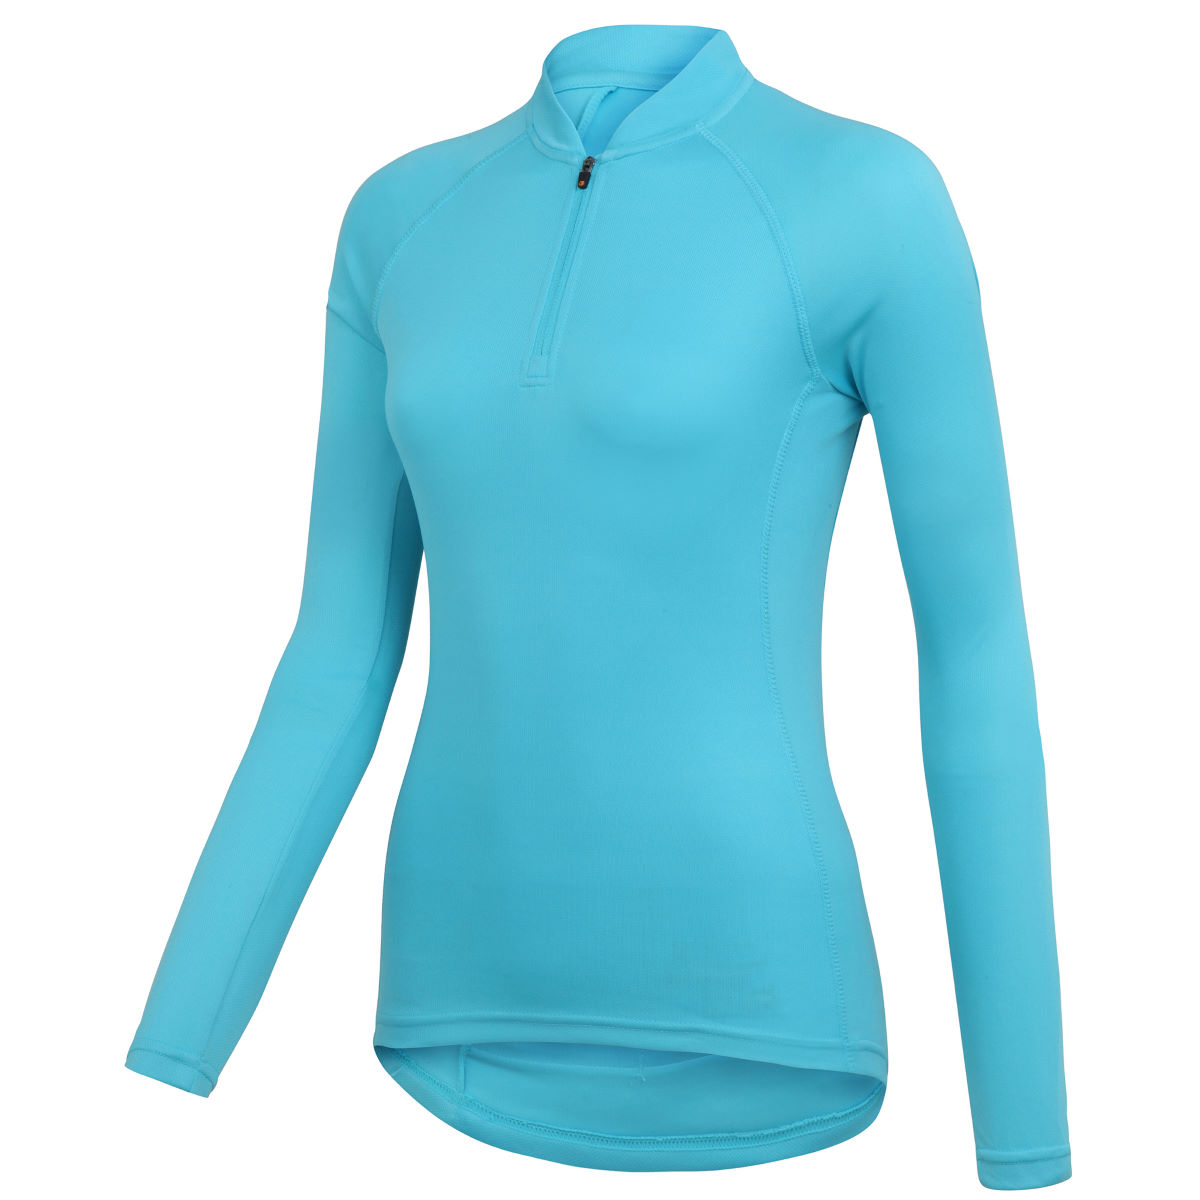 Wiggle Essentials Womens Long Sleeve Cycle Jersey   Long Sleeve Cycling Jerseys